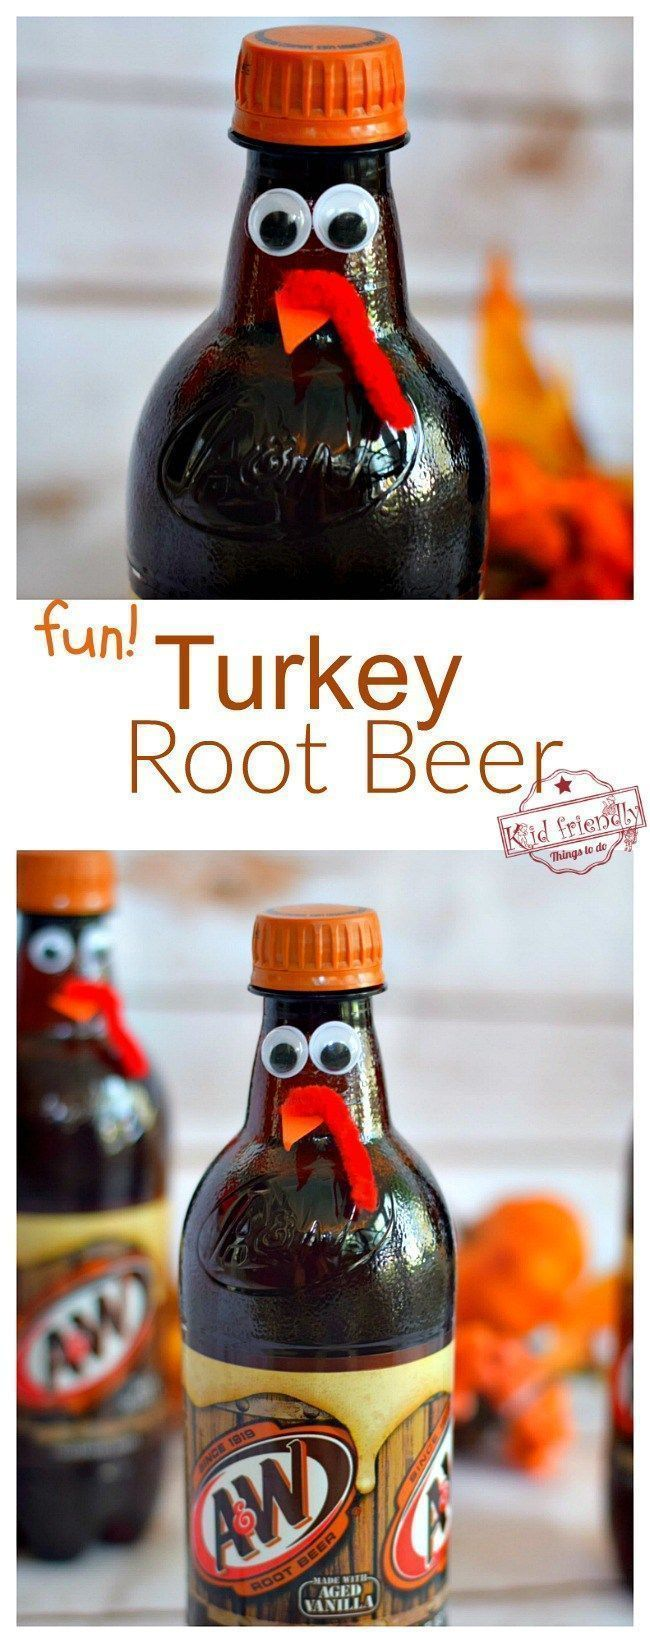 Fun Turkey Root Beer Thanksgiving Drink – Cute Fun Food Craft for the Table